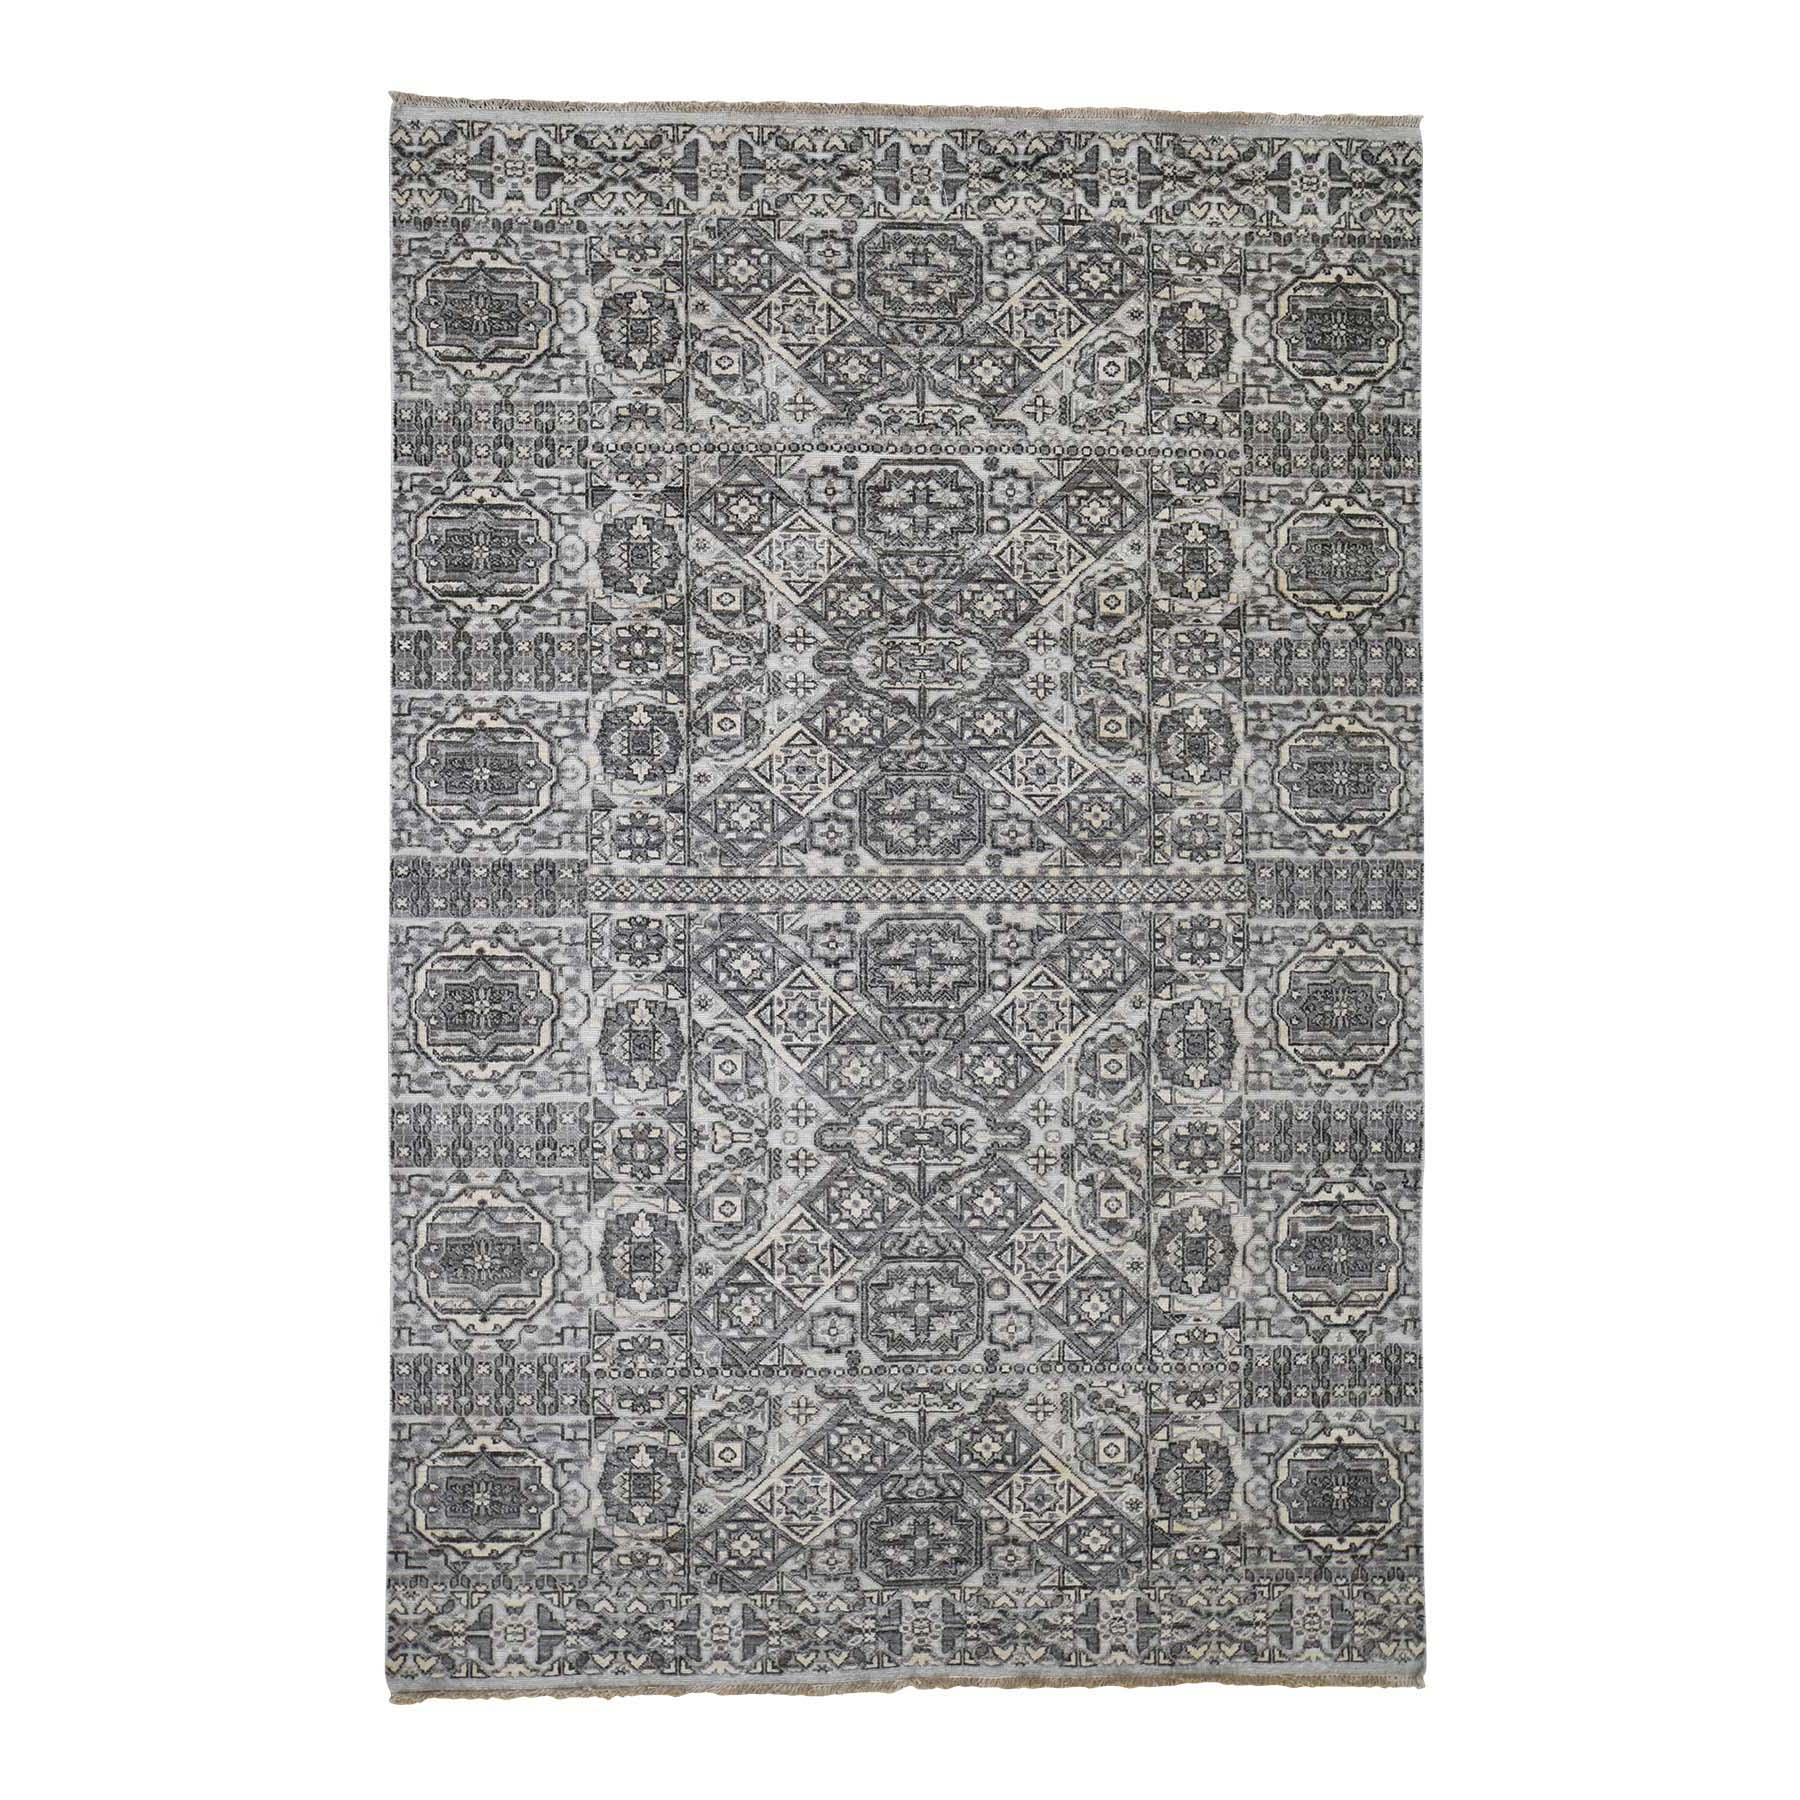 """5'6""""x8'2"""" Mamluk Design Hand-Knotted Undyed Natural Wool Oriental Rug"""